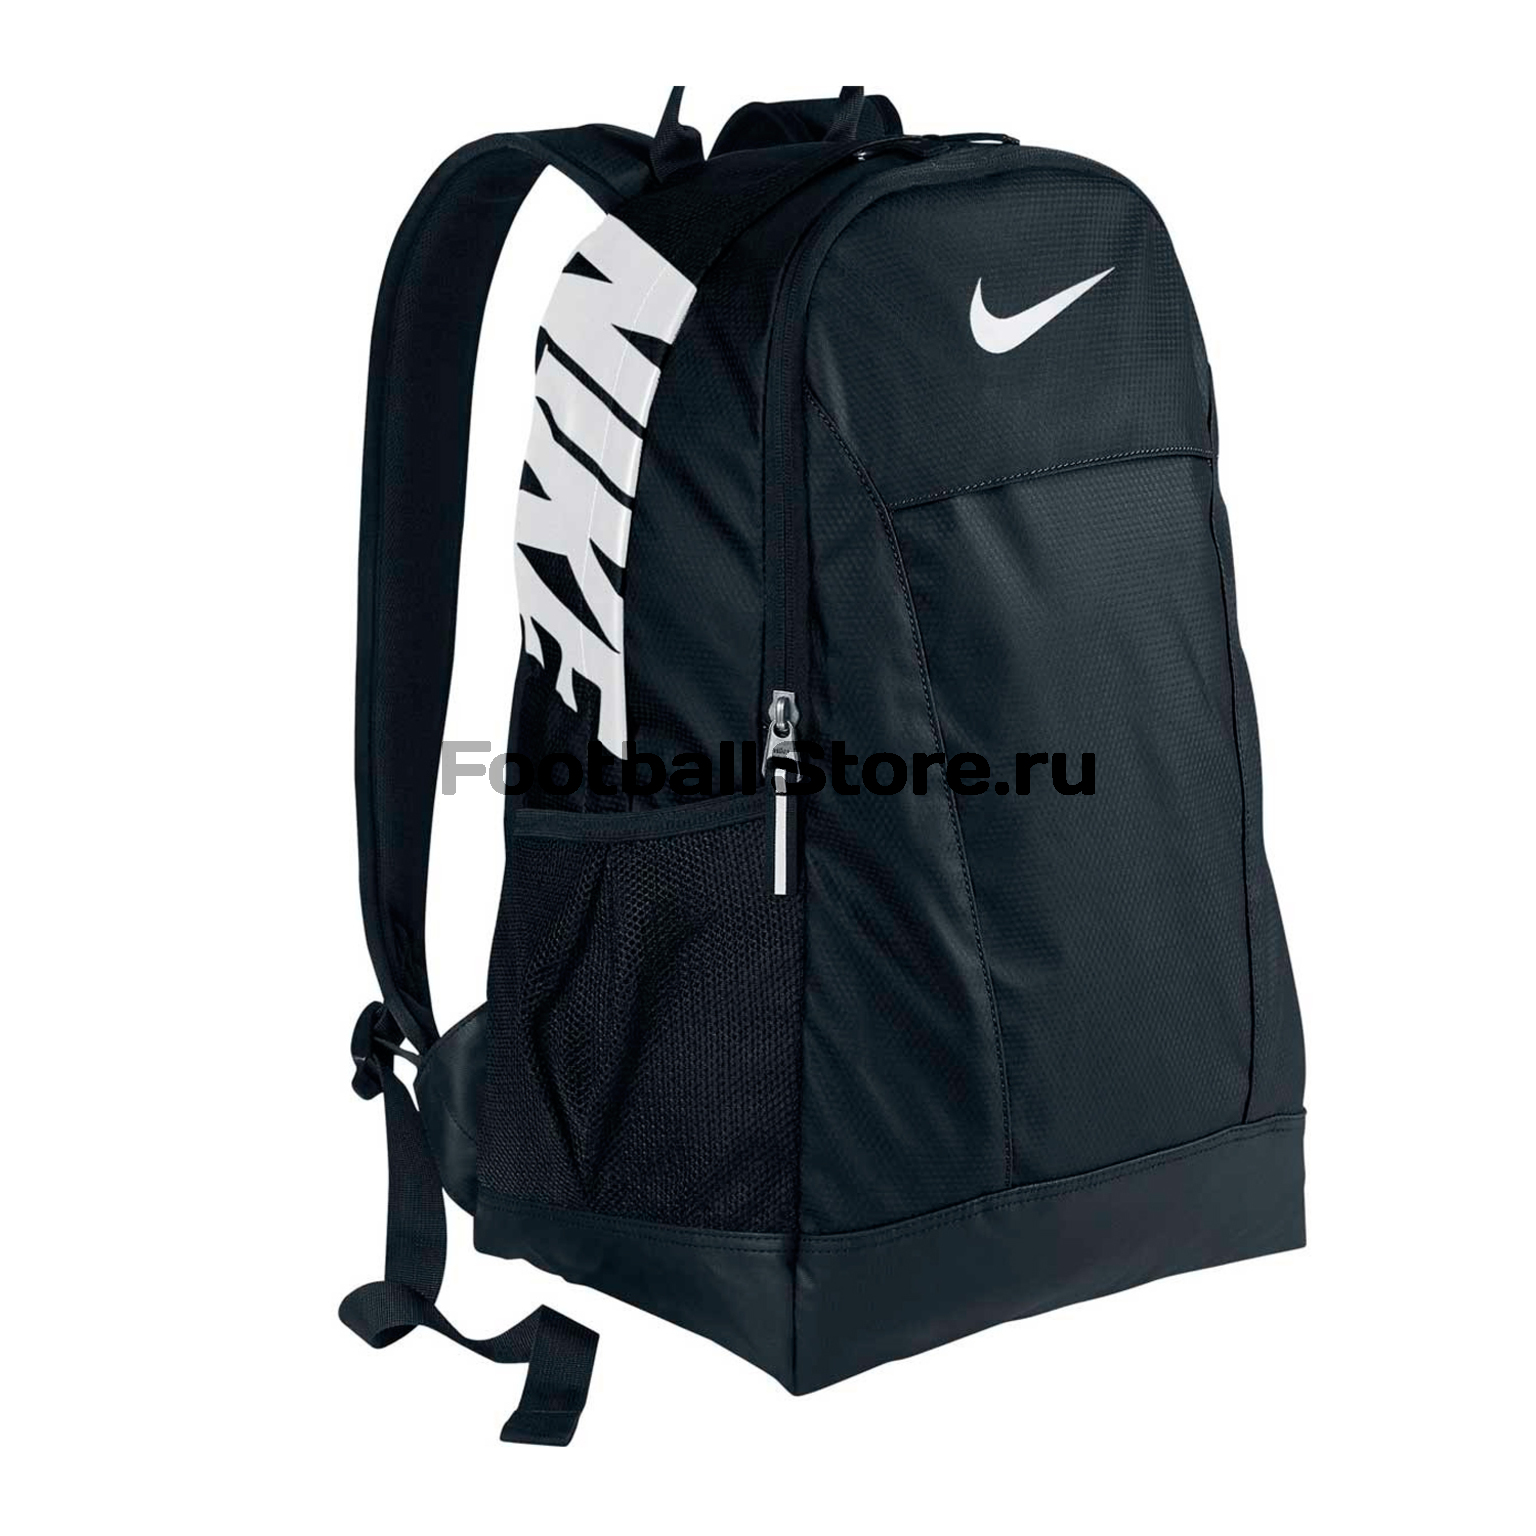 Сумки/Рюкзаки Nike Рюкзак Nike Team Training M Backpack BA4614-067